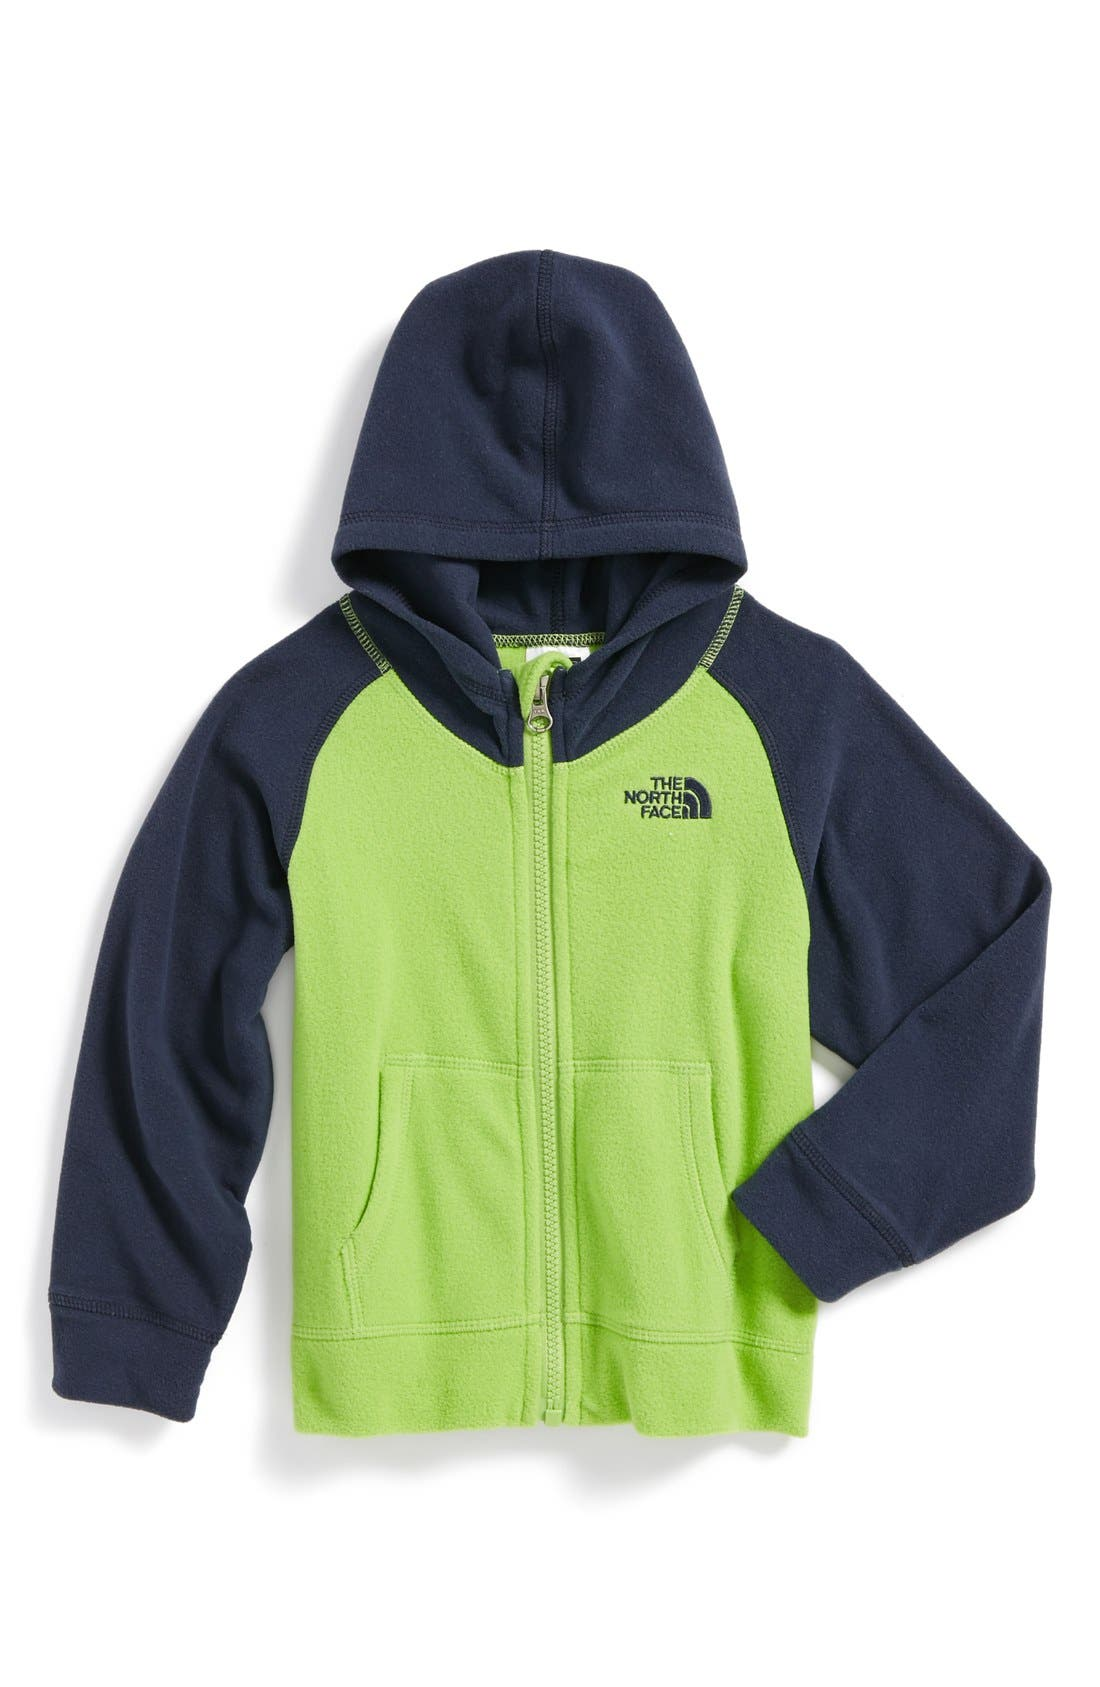 Main Image - The North Face 'Glacier' Hoodie (Toddler Boys)